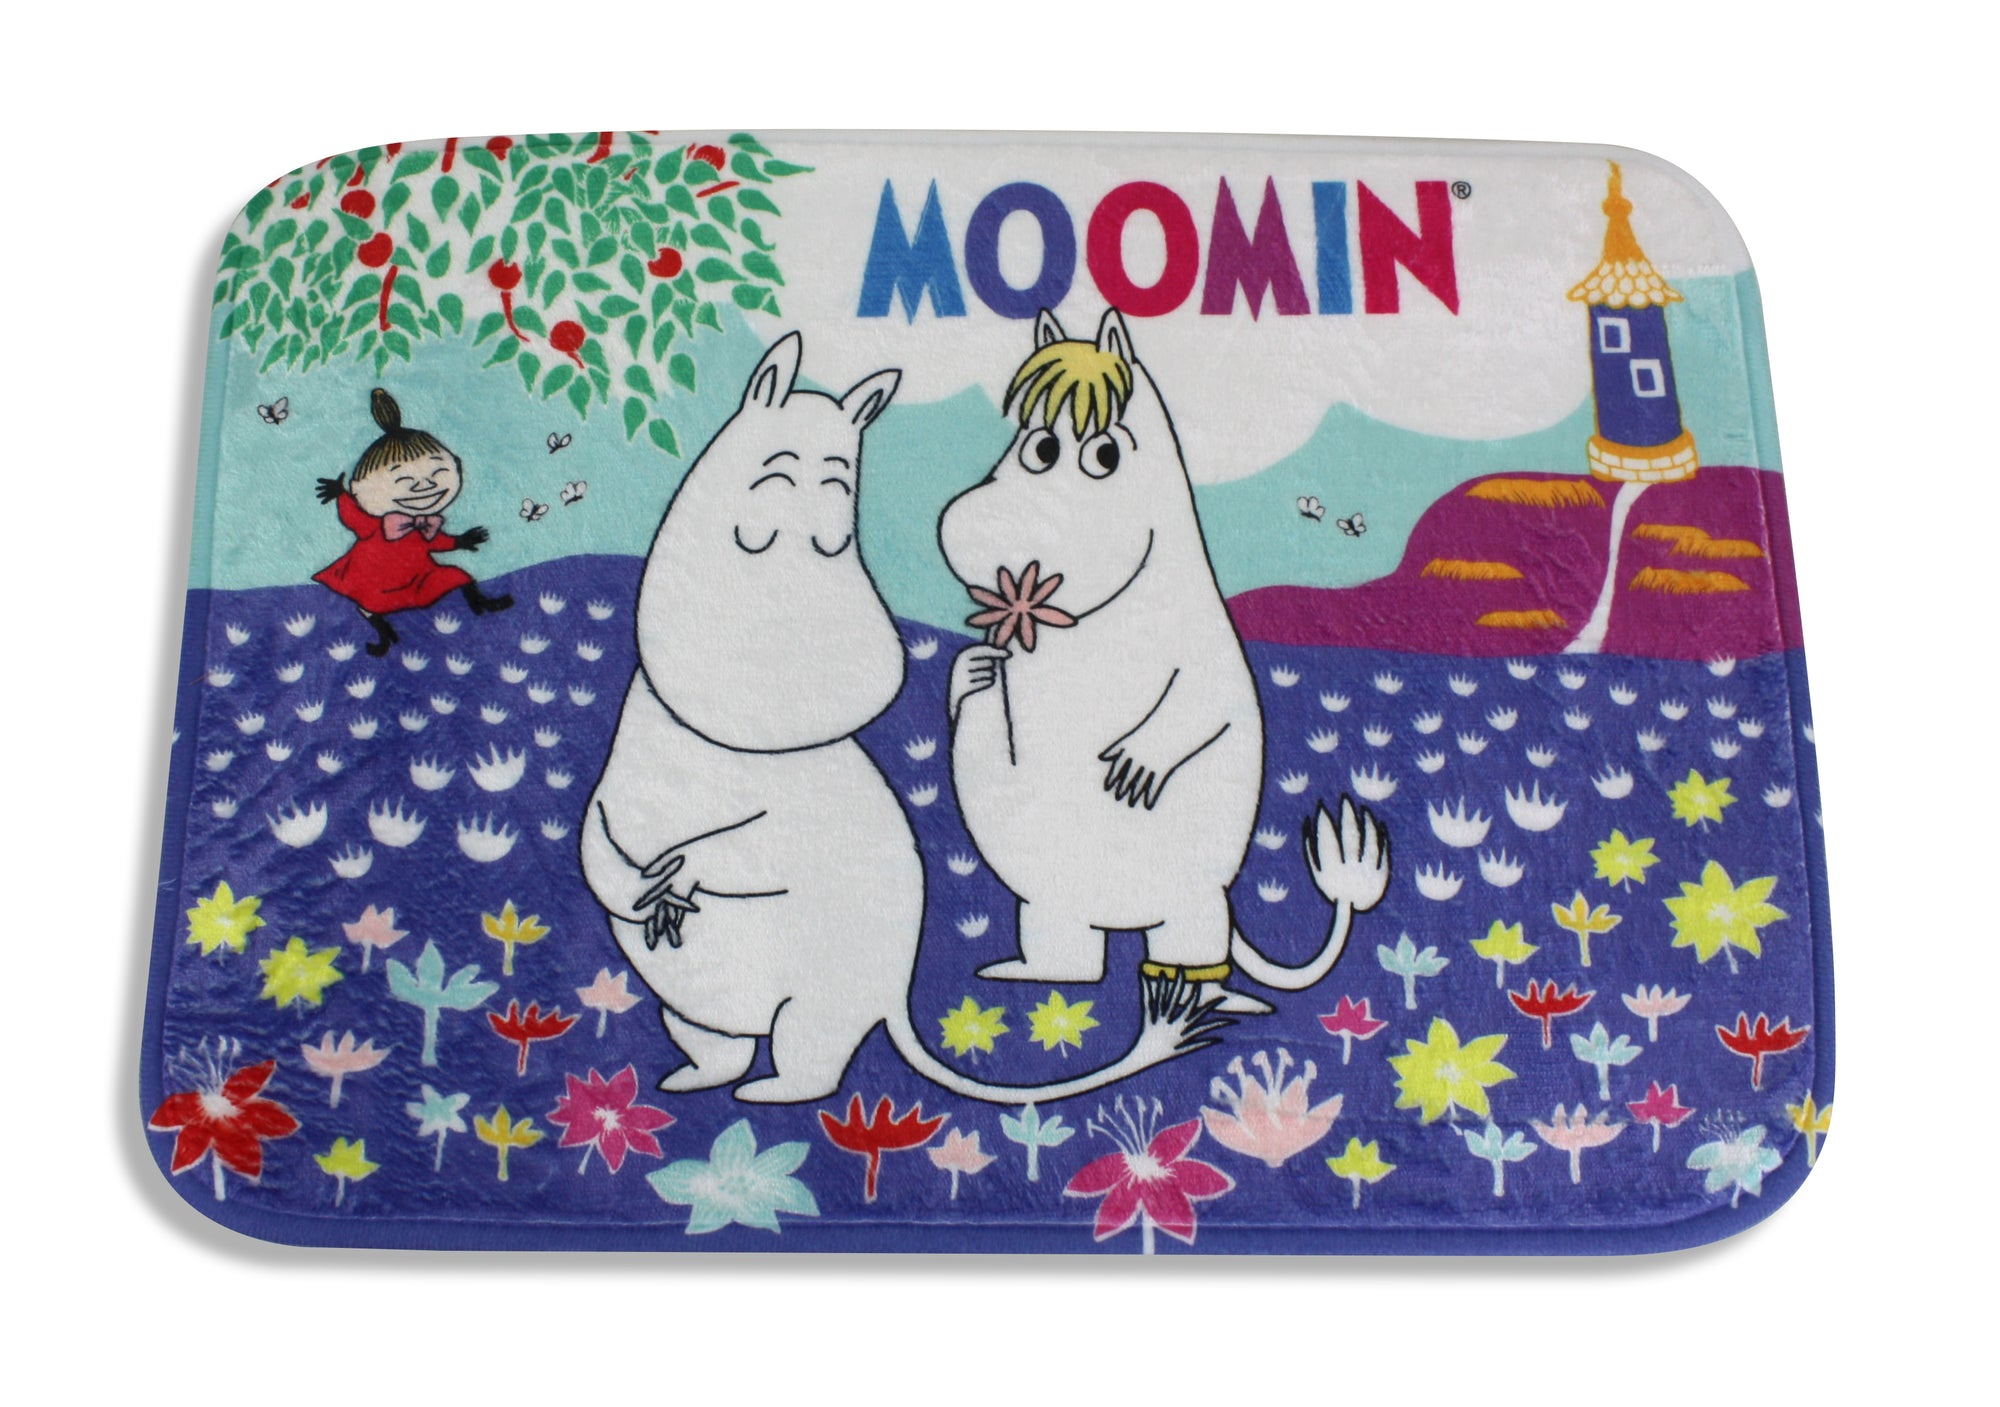 Moomin Bath Mat, Floor Mat 35cm x 50cm: Love is in the air. - farangshop-co